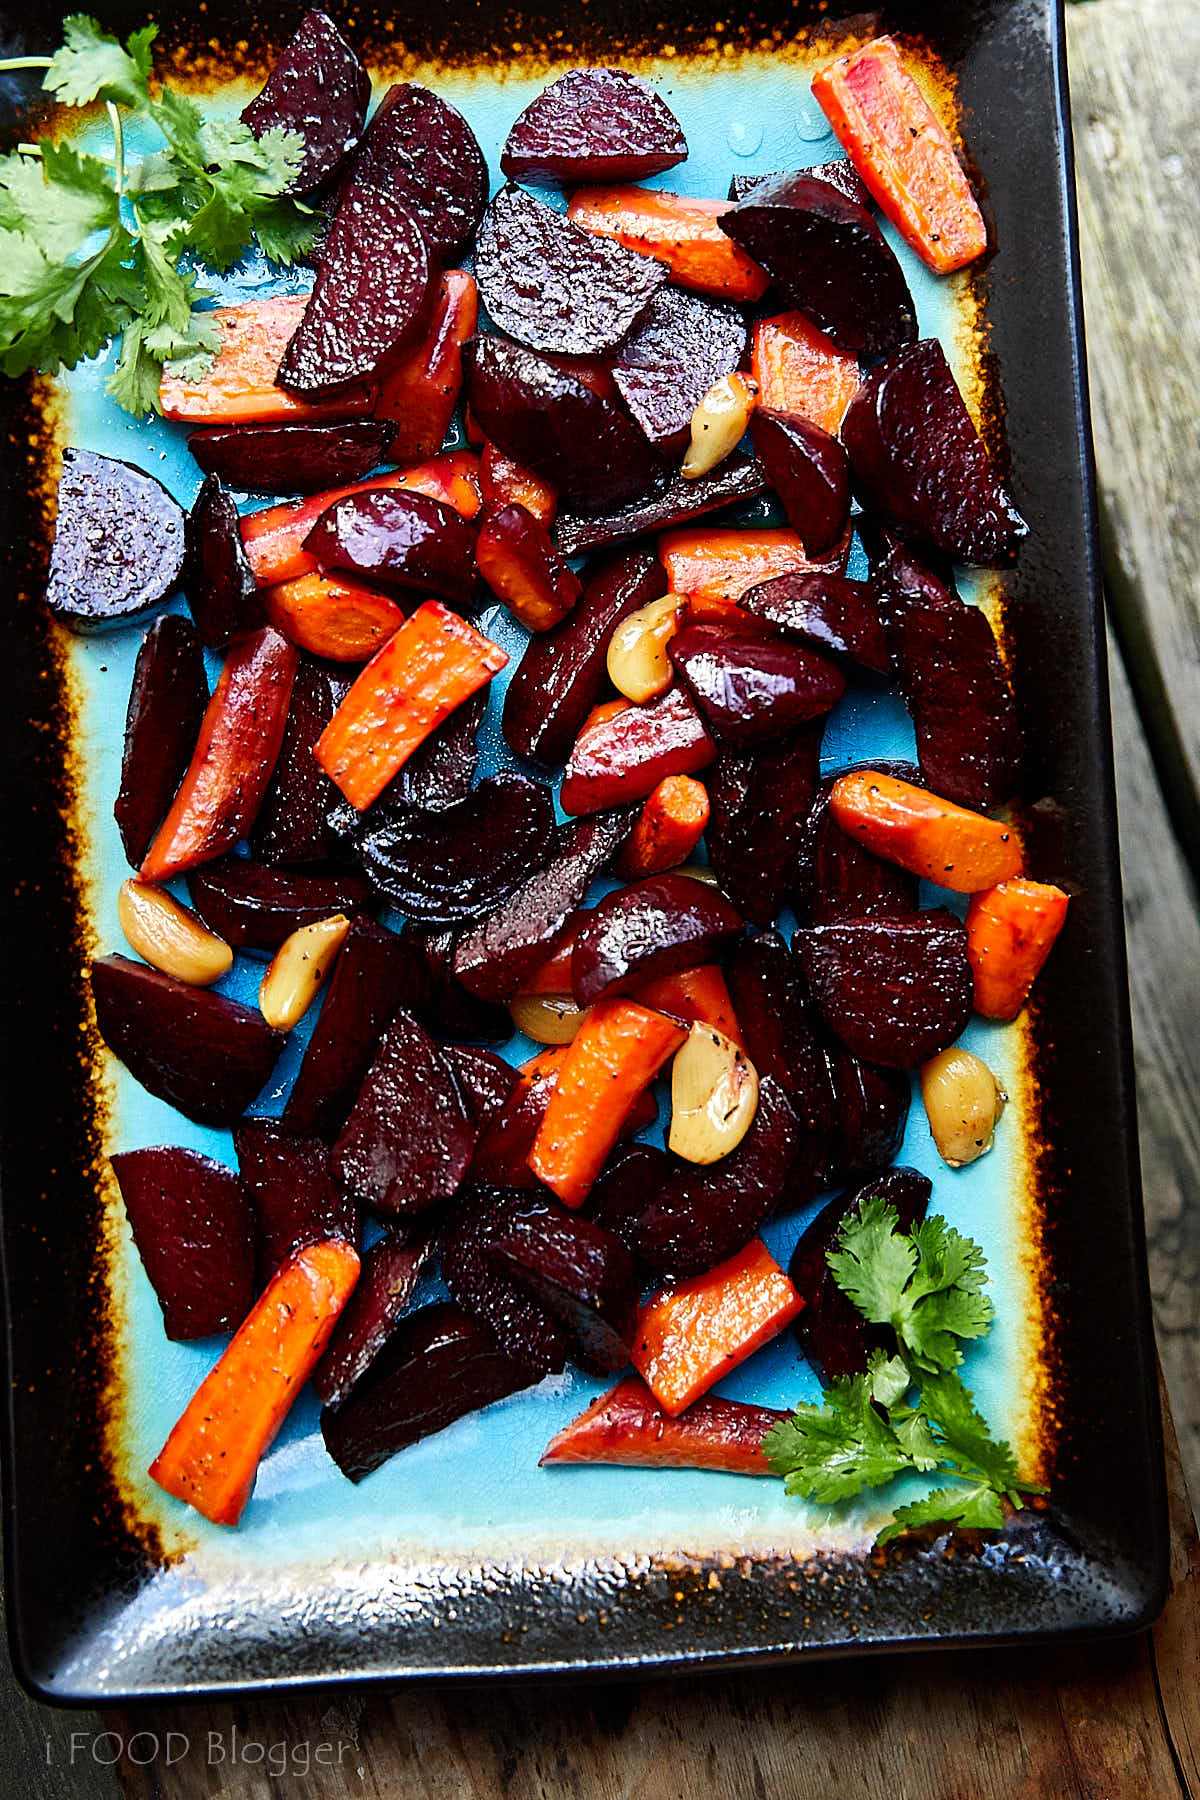 Roasted Beets and Carrots with Feta on a serving platter.